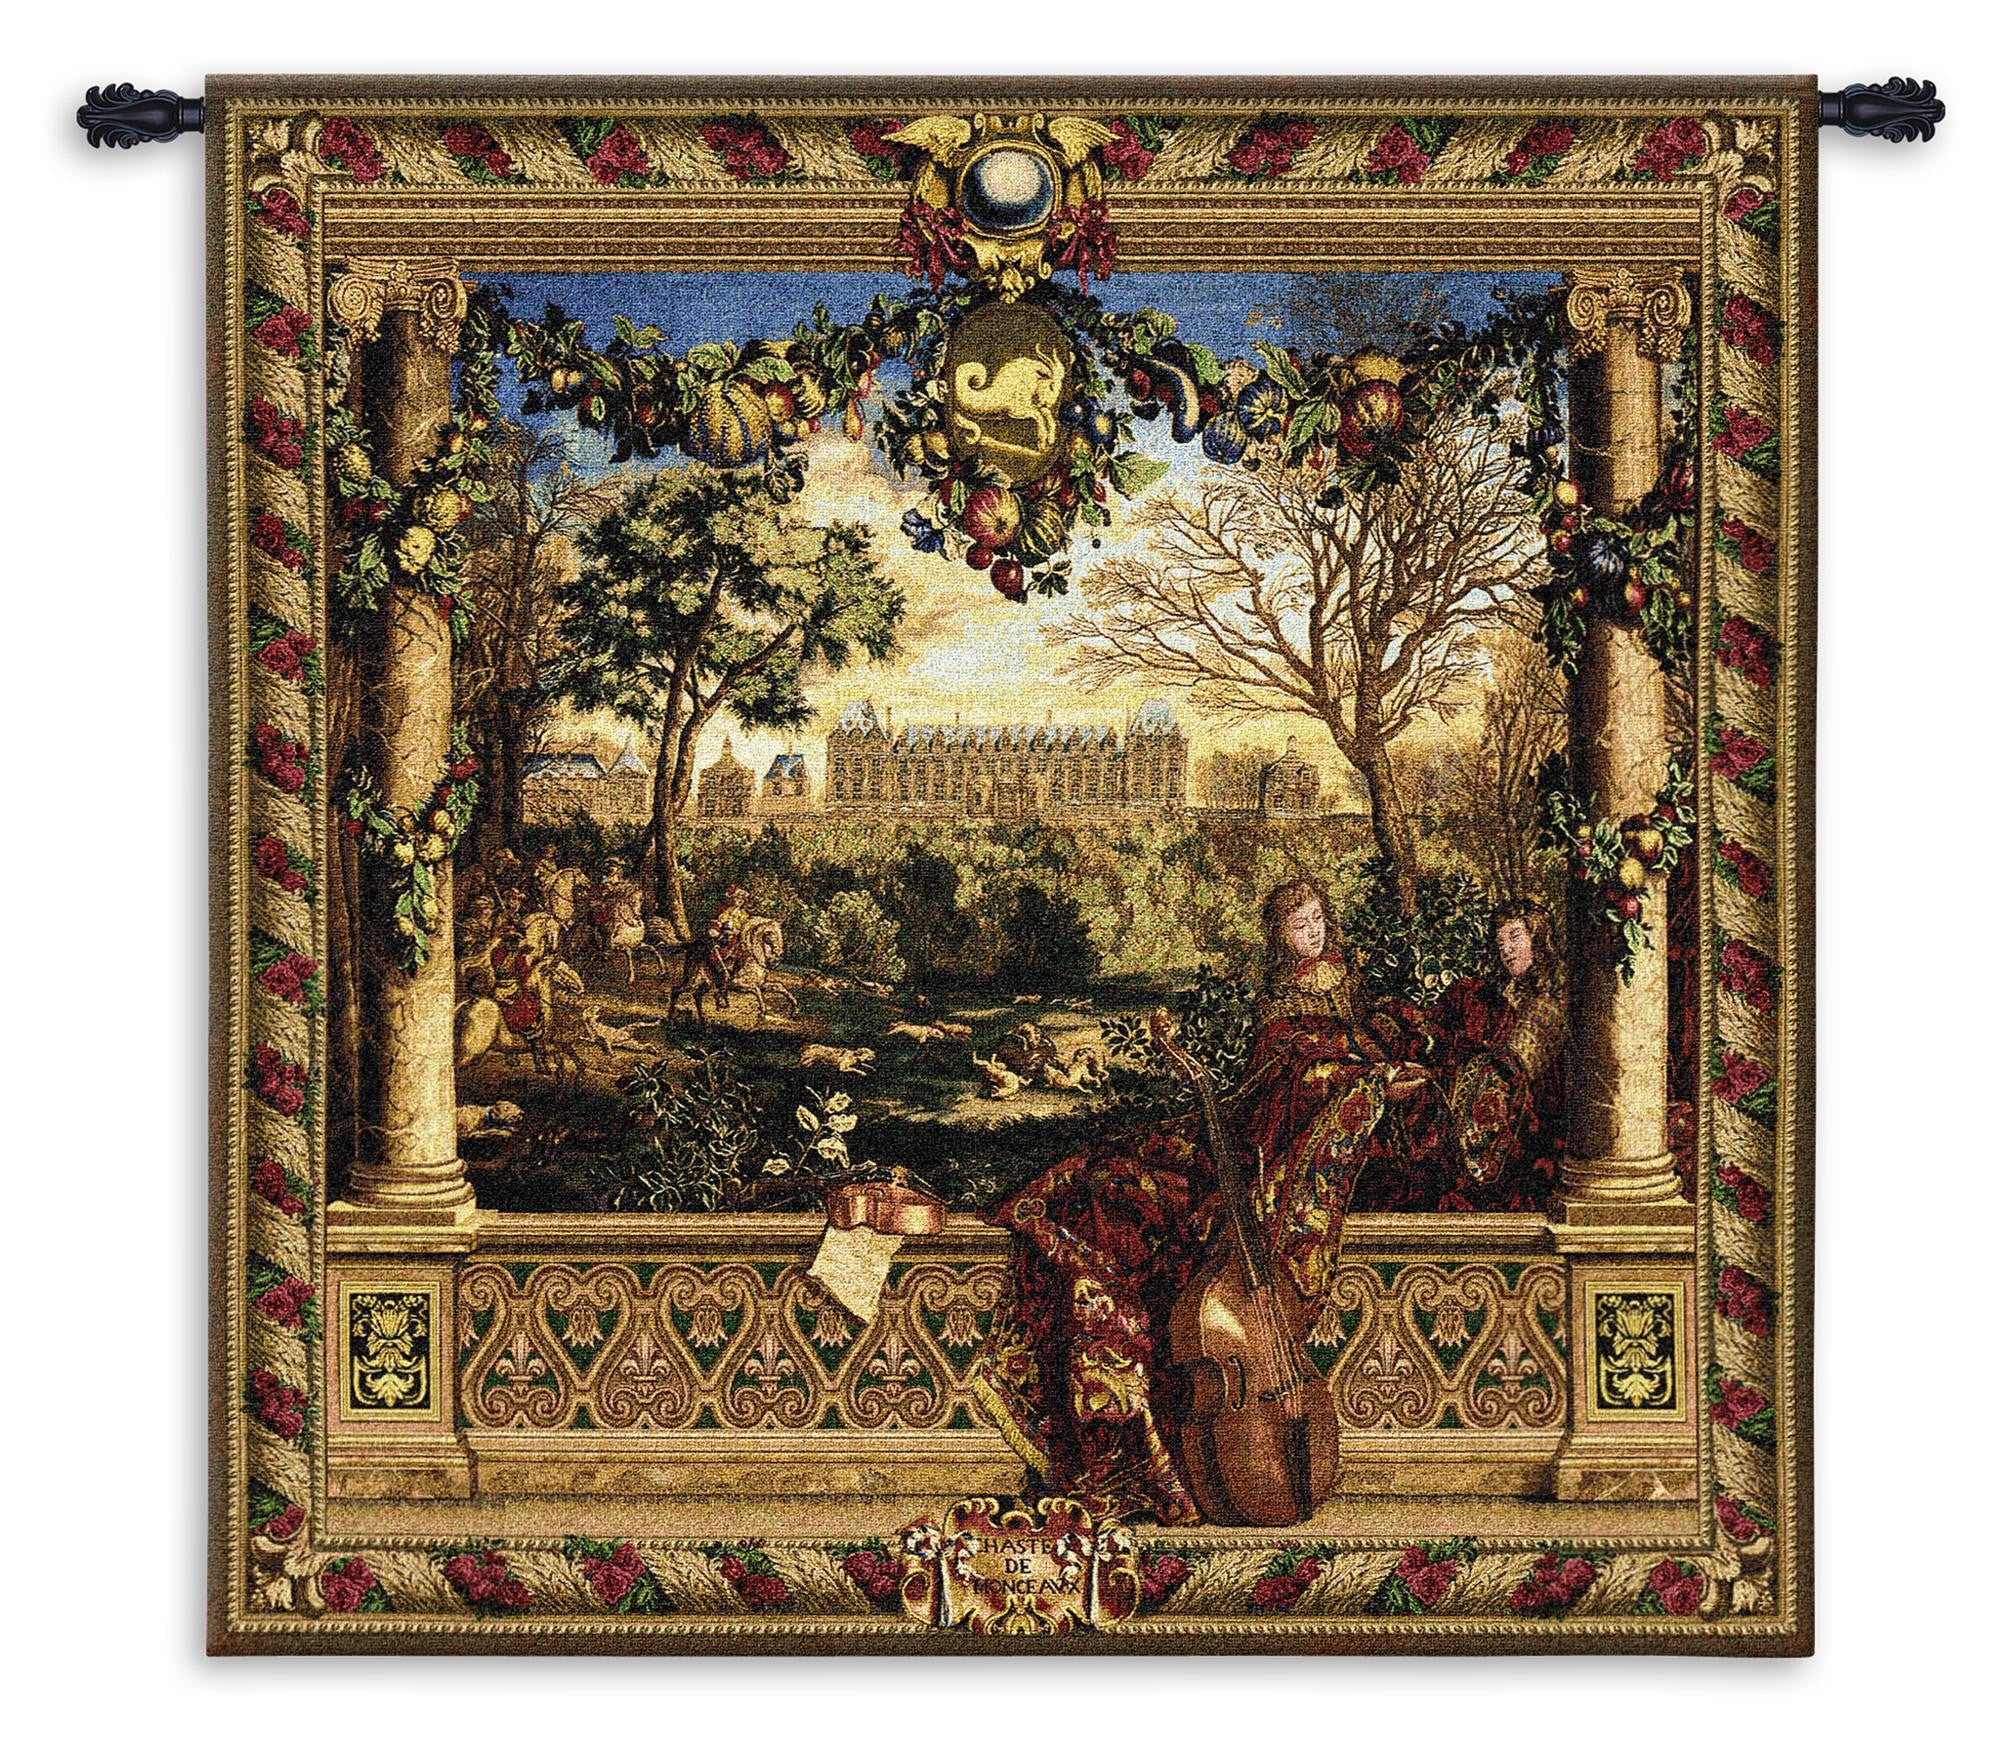 Le Chateau De Monceau Woven Wall Decor